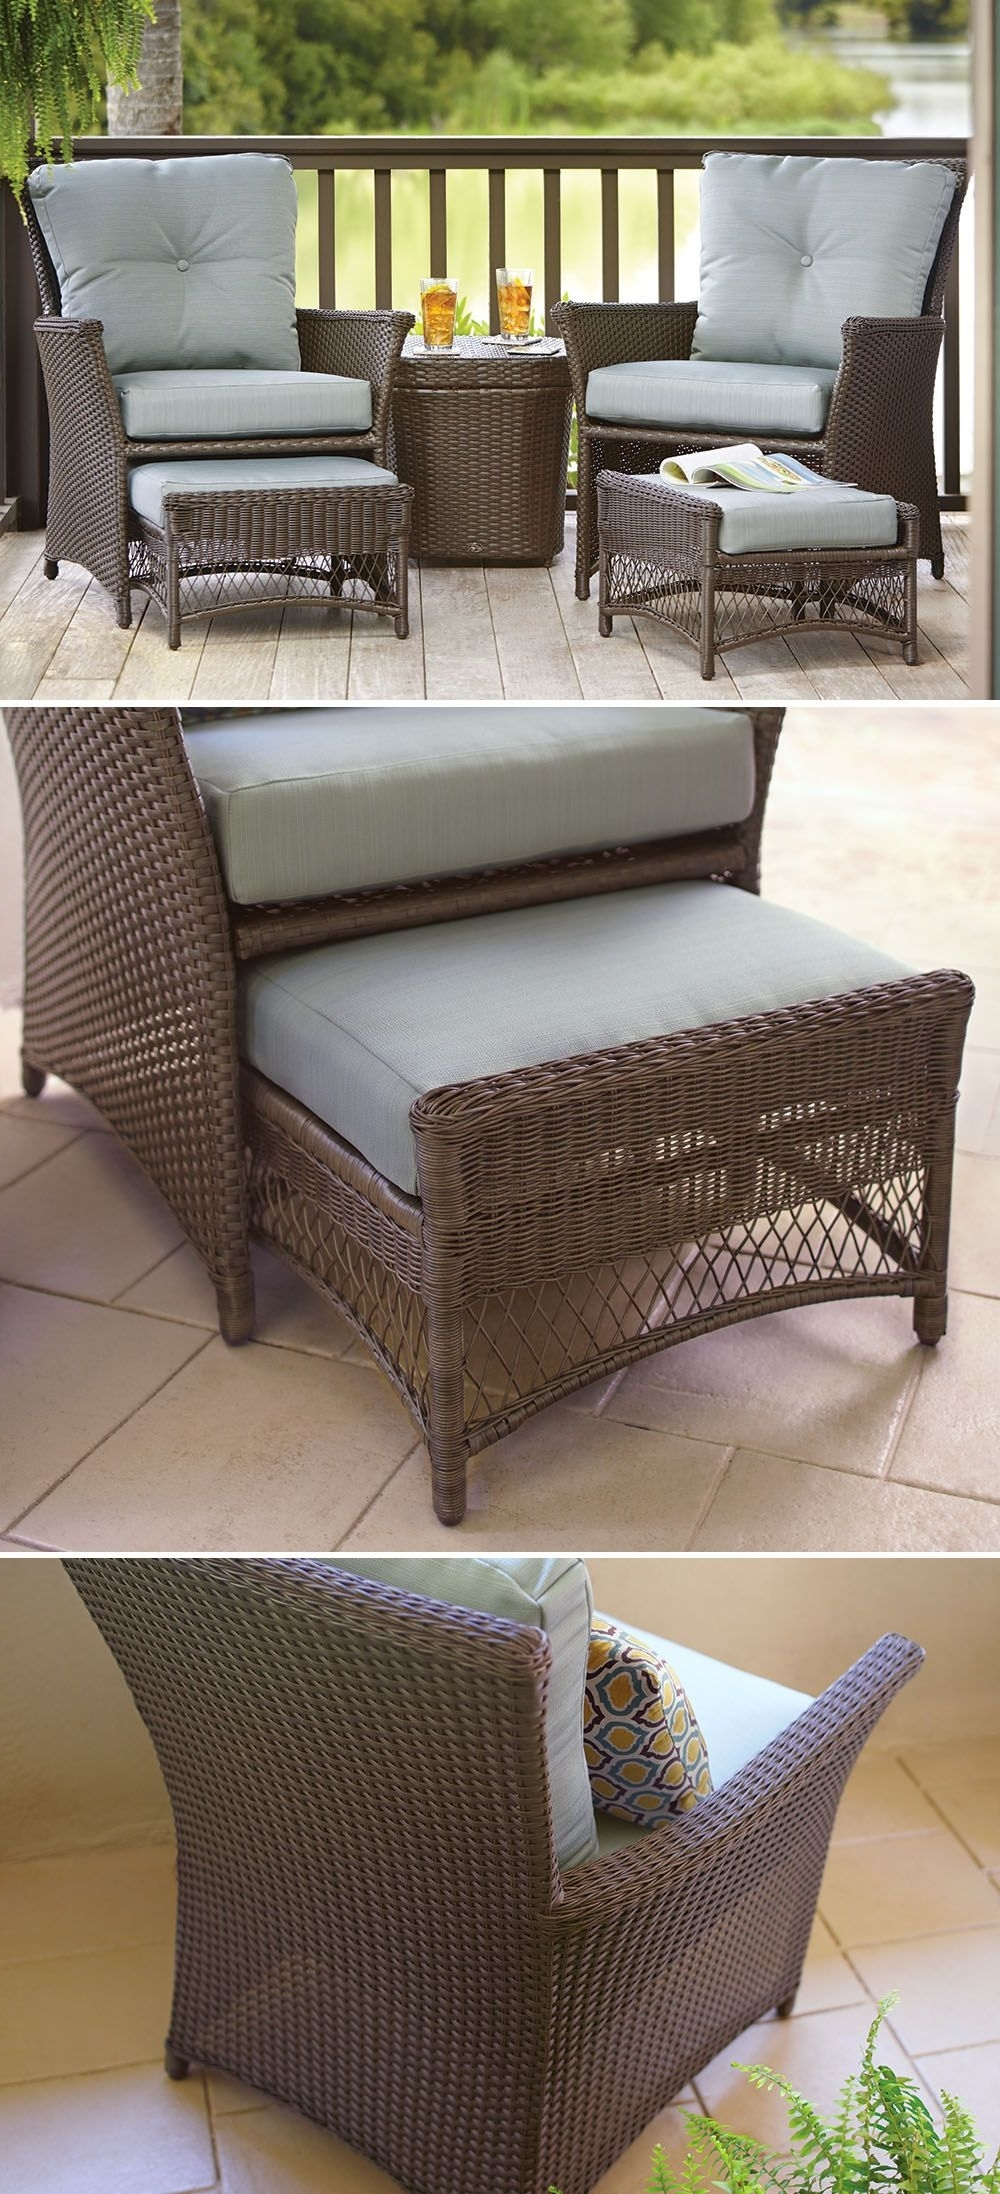 Trendy This Affordable Patio Set Is Just The Right Size For Your Small With Patio Conversation Sets With Storage (View 6 of 20)